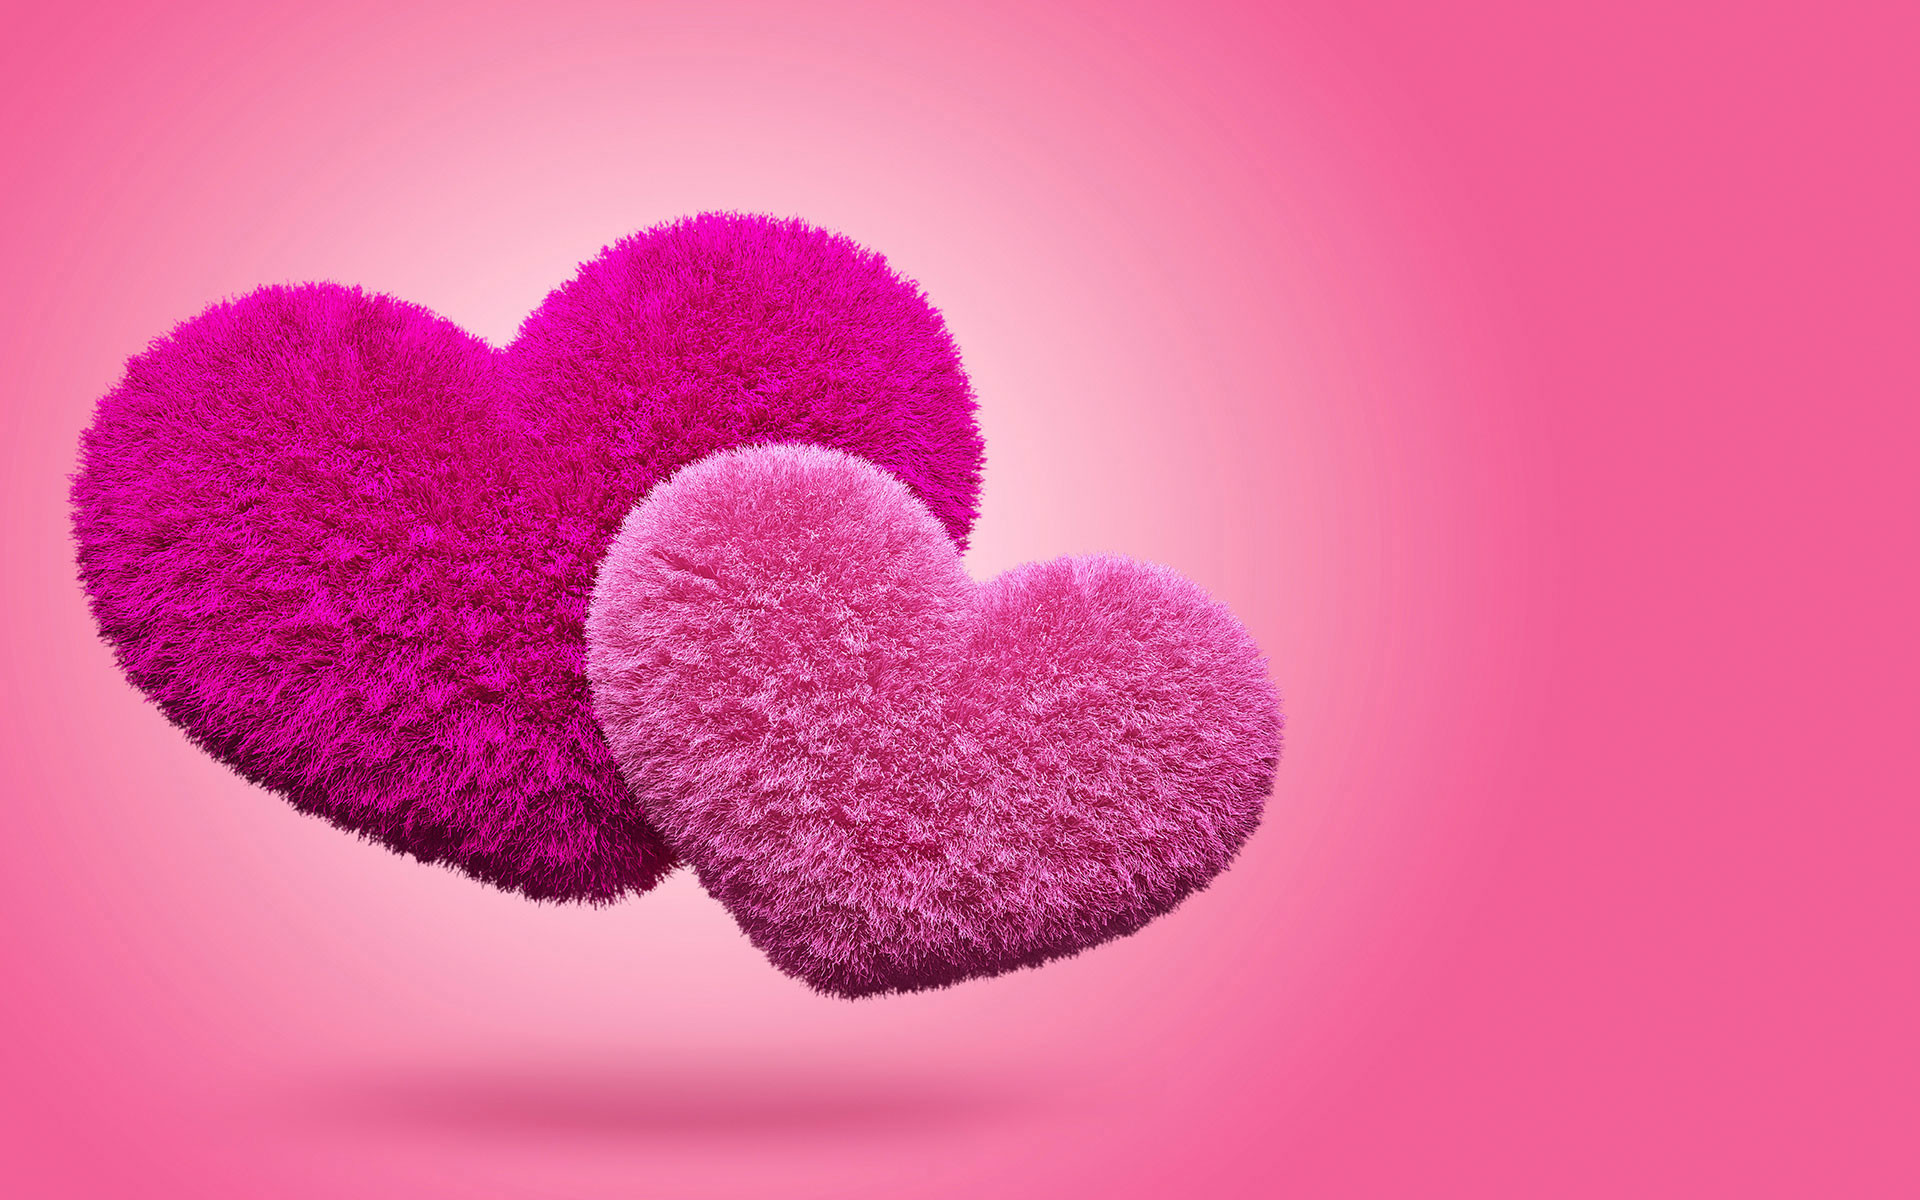 Pink Hearts Background 183 ① Wallpapertag